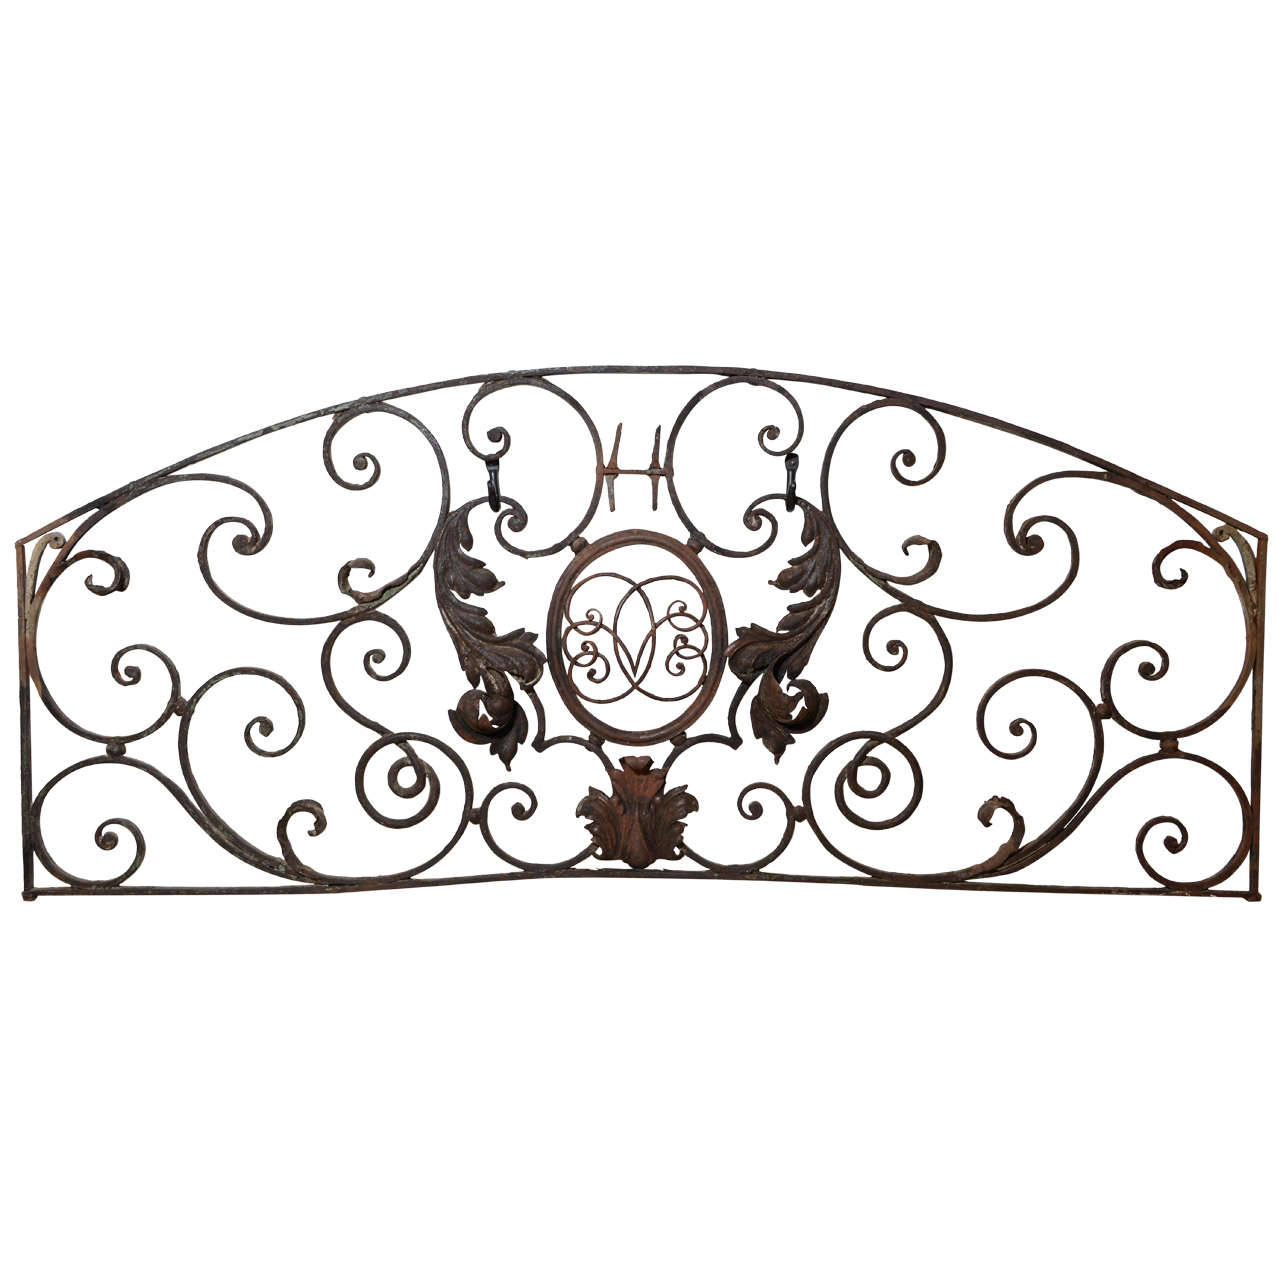 19 c wrought iron wall hanging at 1stdibs for Wrought iron home decorations